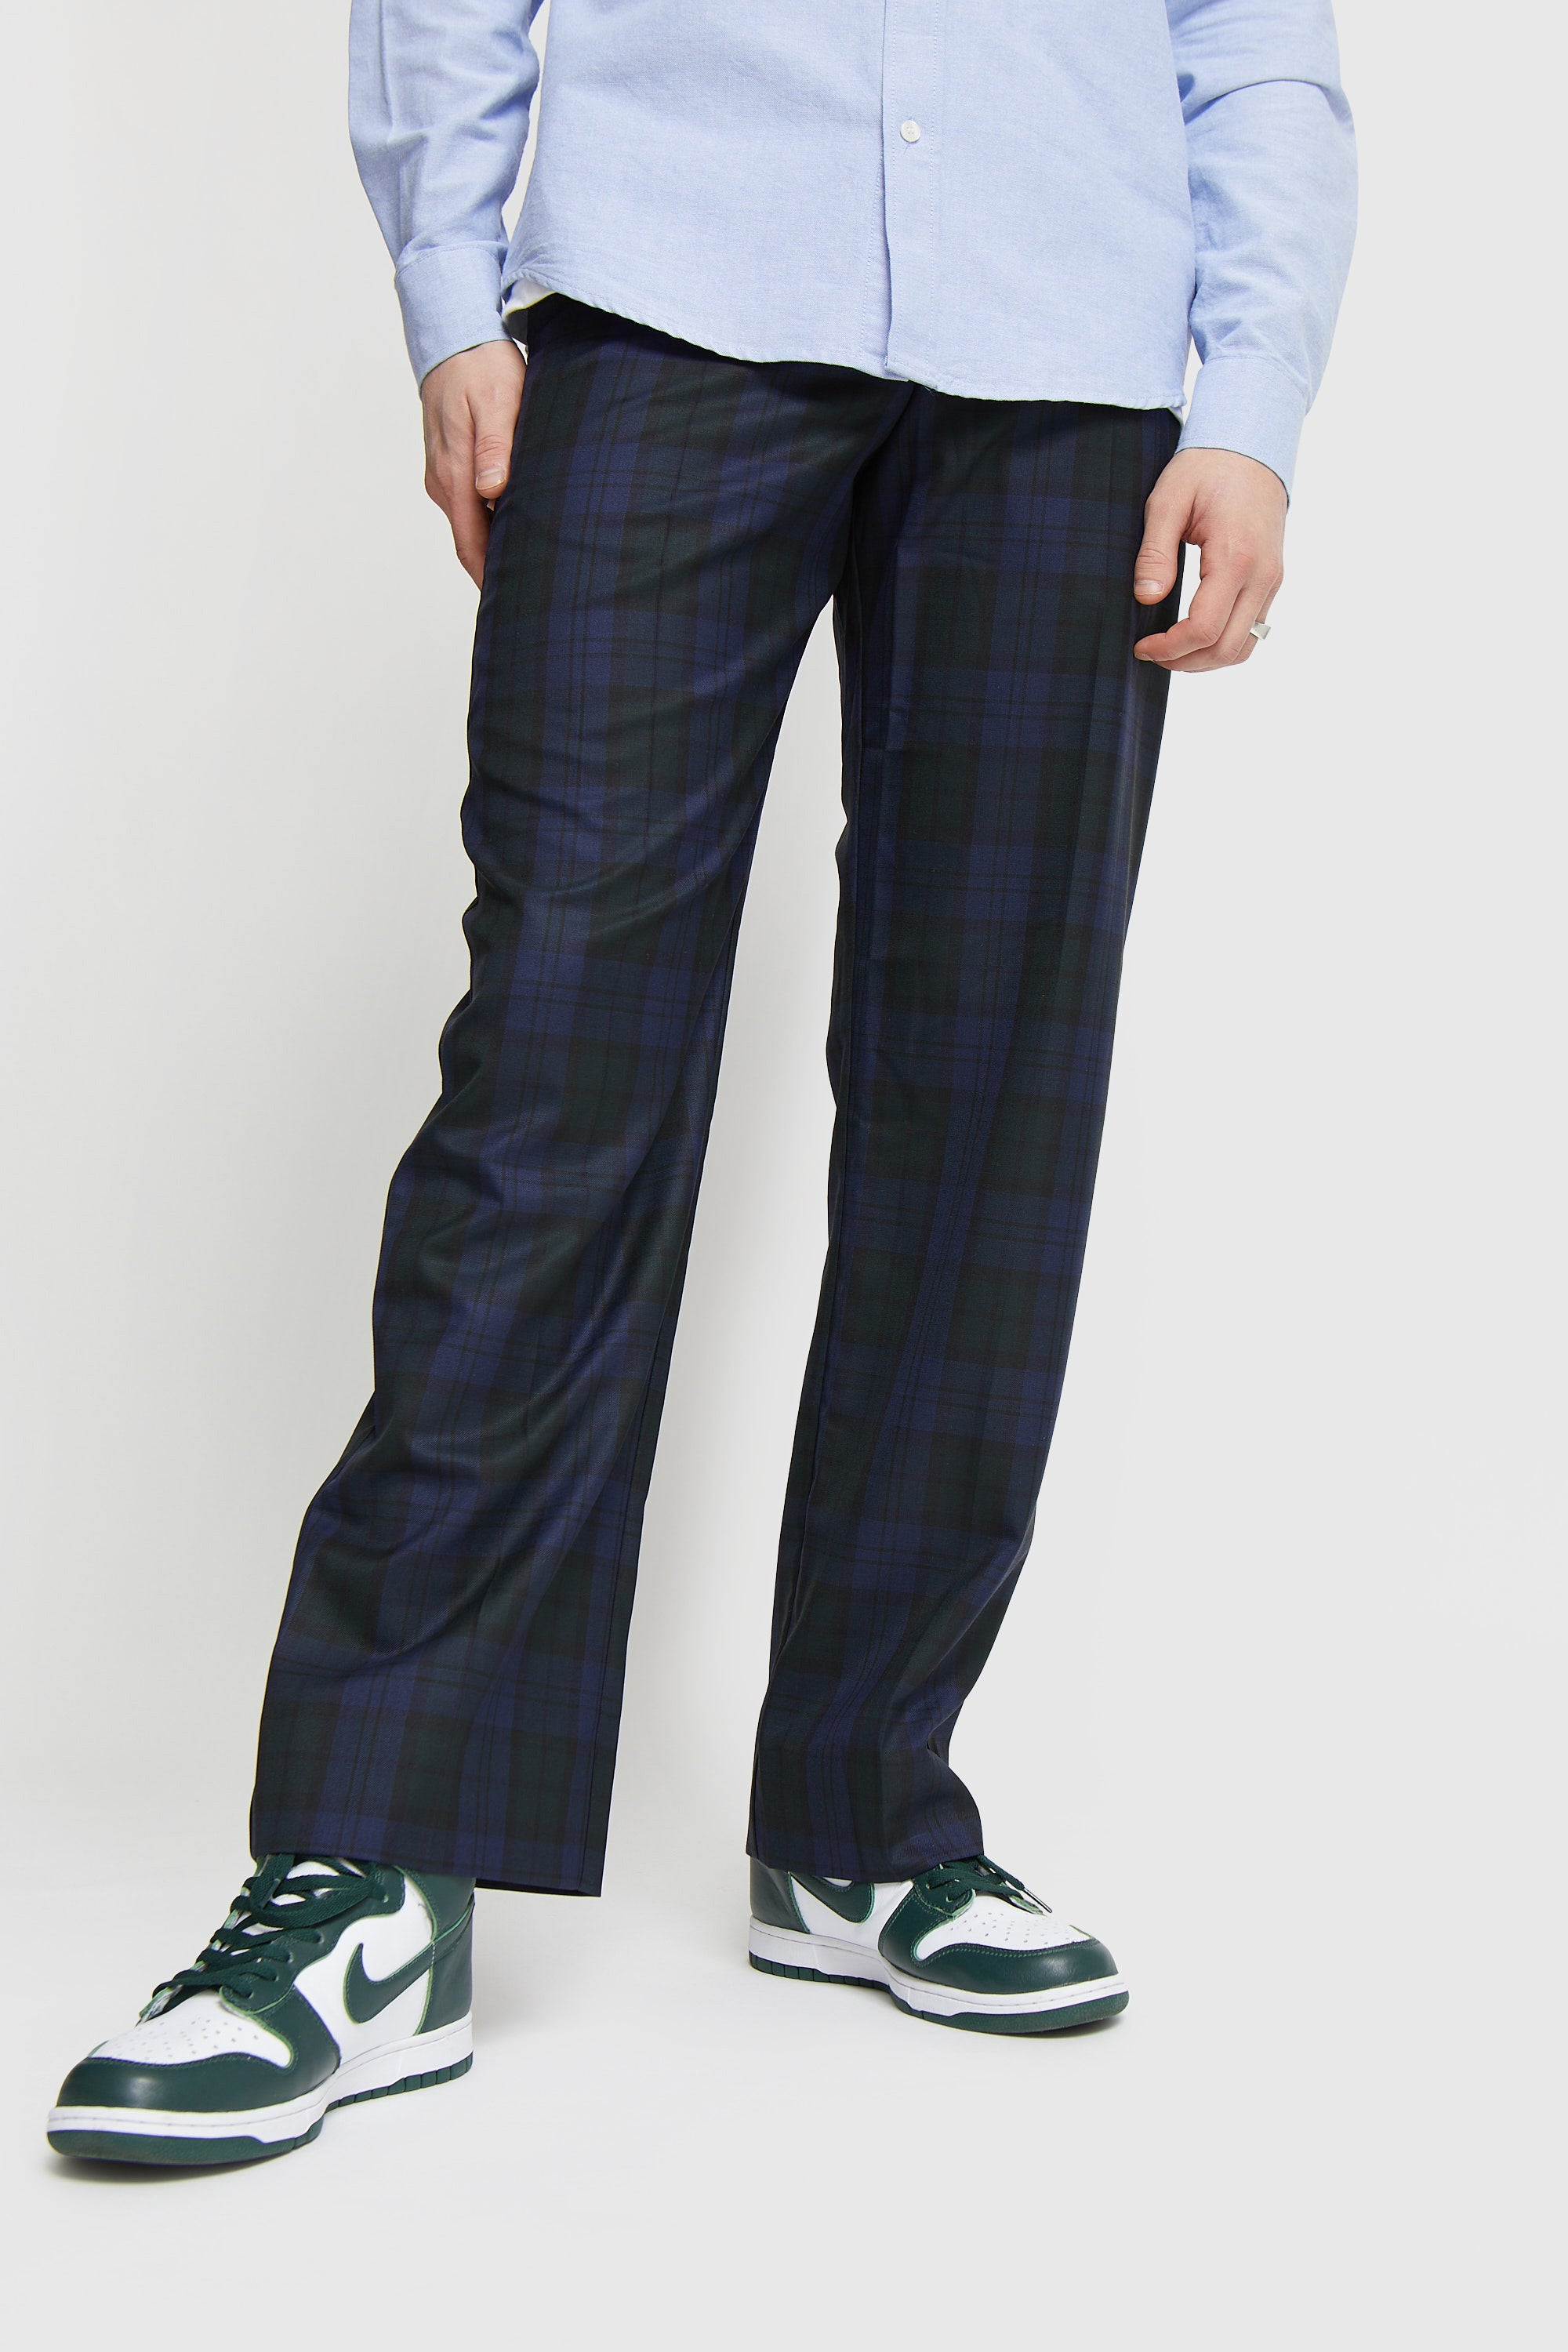 WOOD WOOD SURREY CHECKED TROUSERS